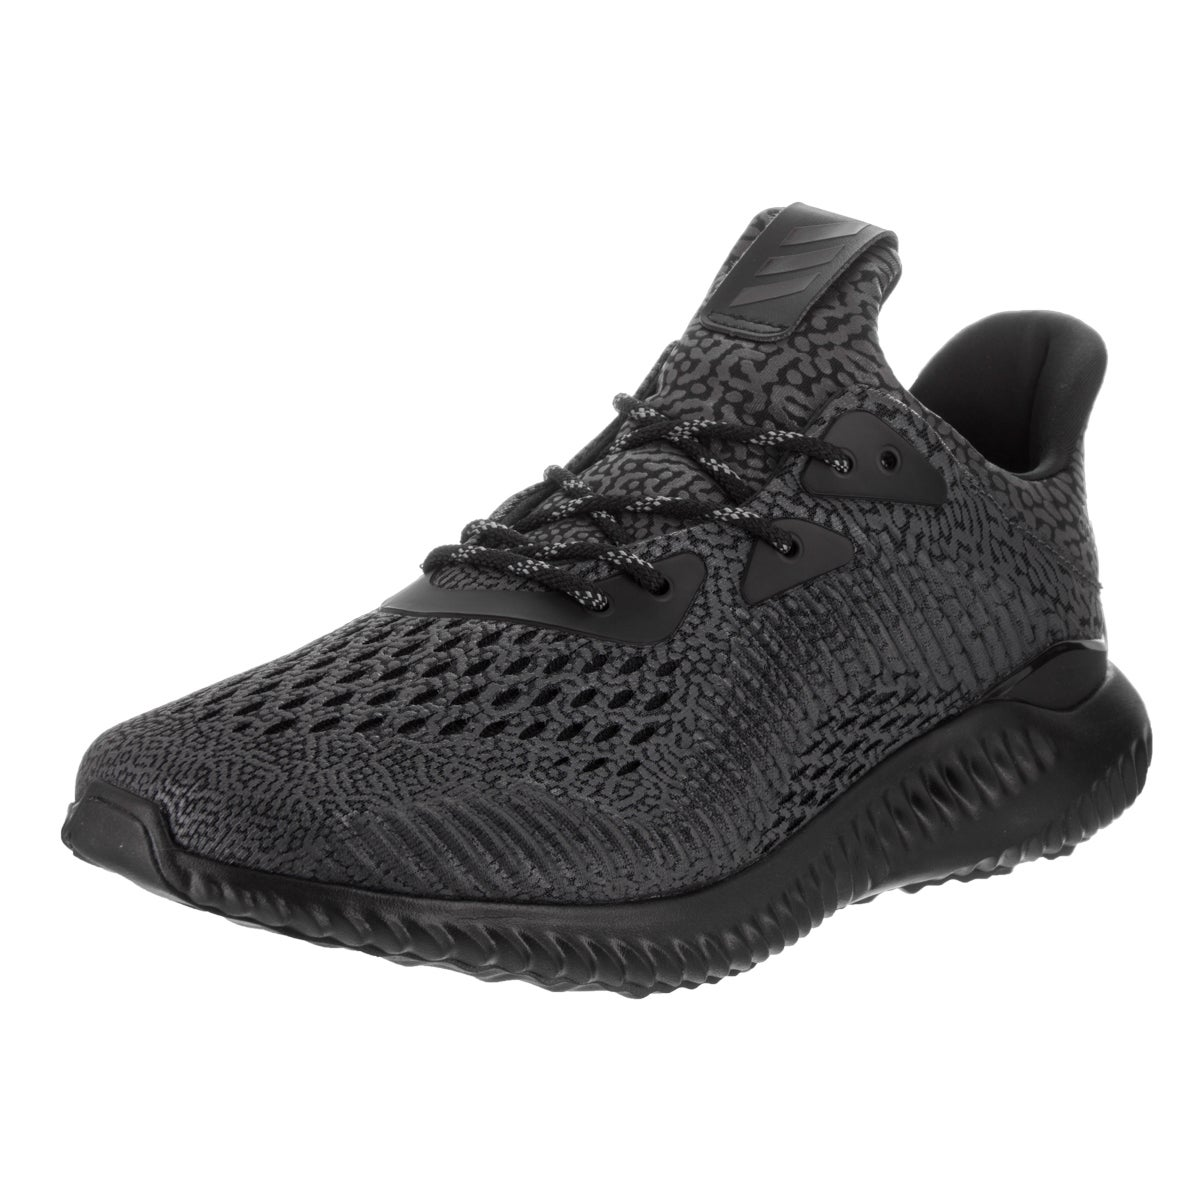 d584c2fc6ac03 Shop Adidas Men s Alphabounce Ams Running Shoes - Free Shipping Today -  Overstock - 14628771